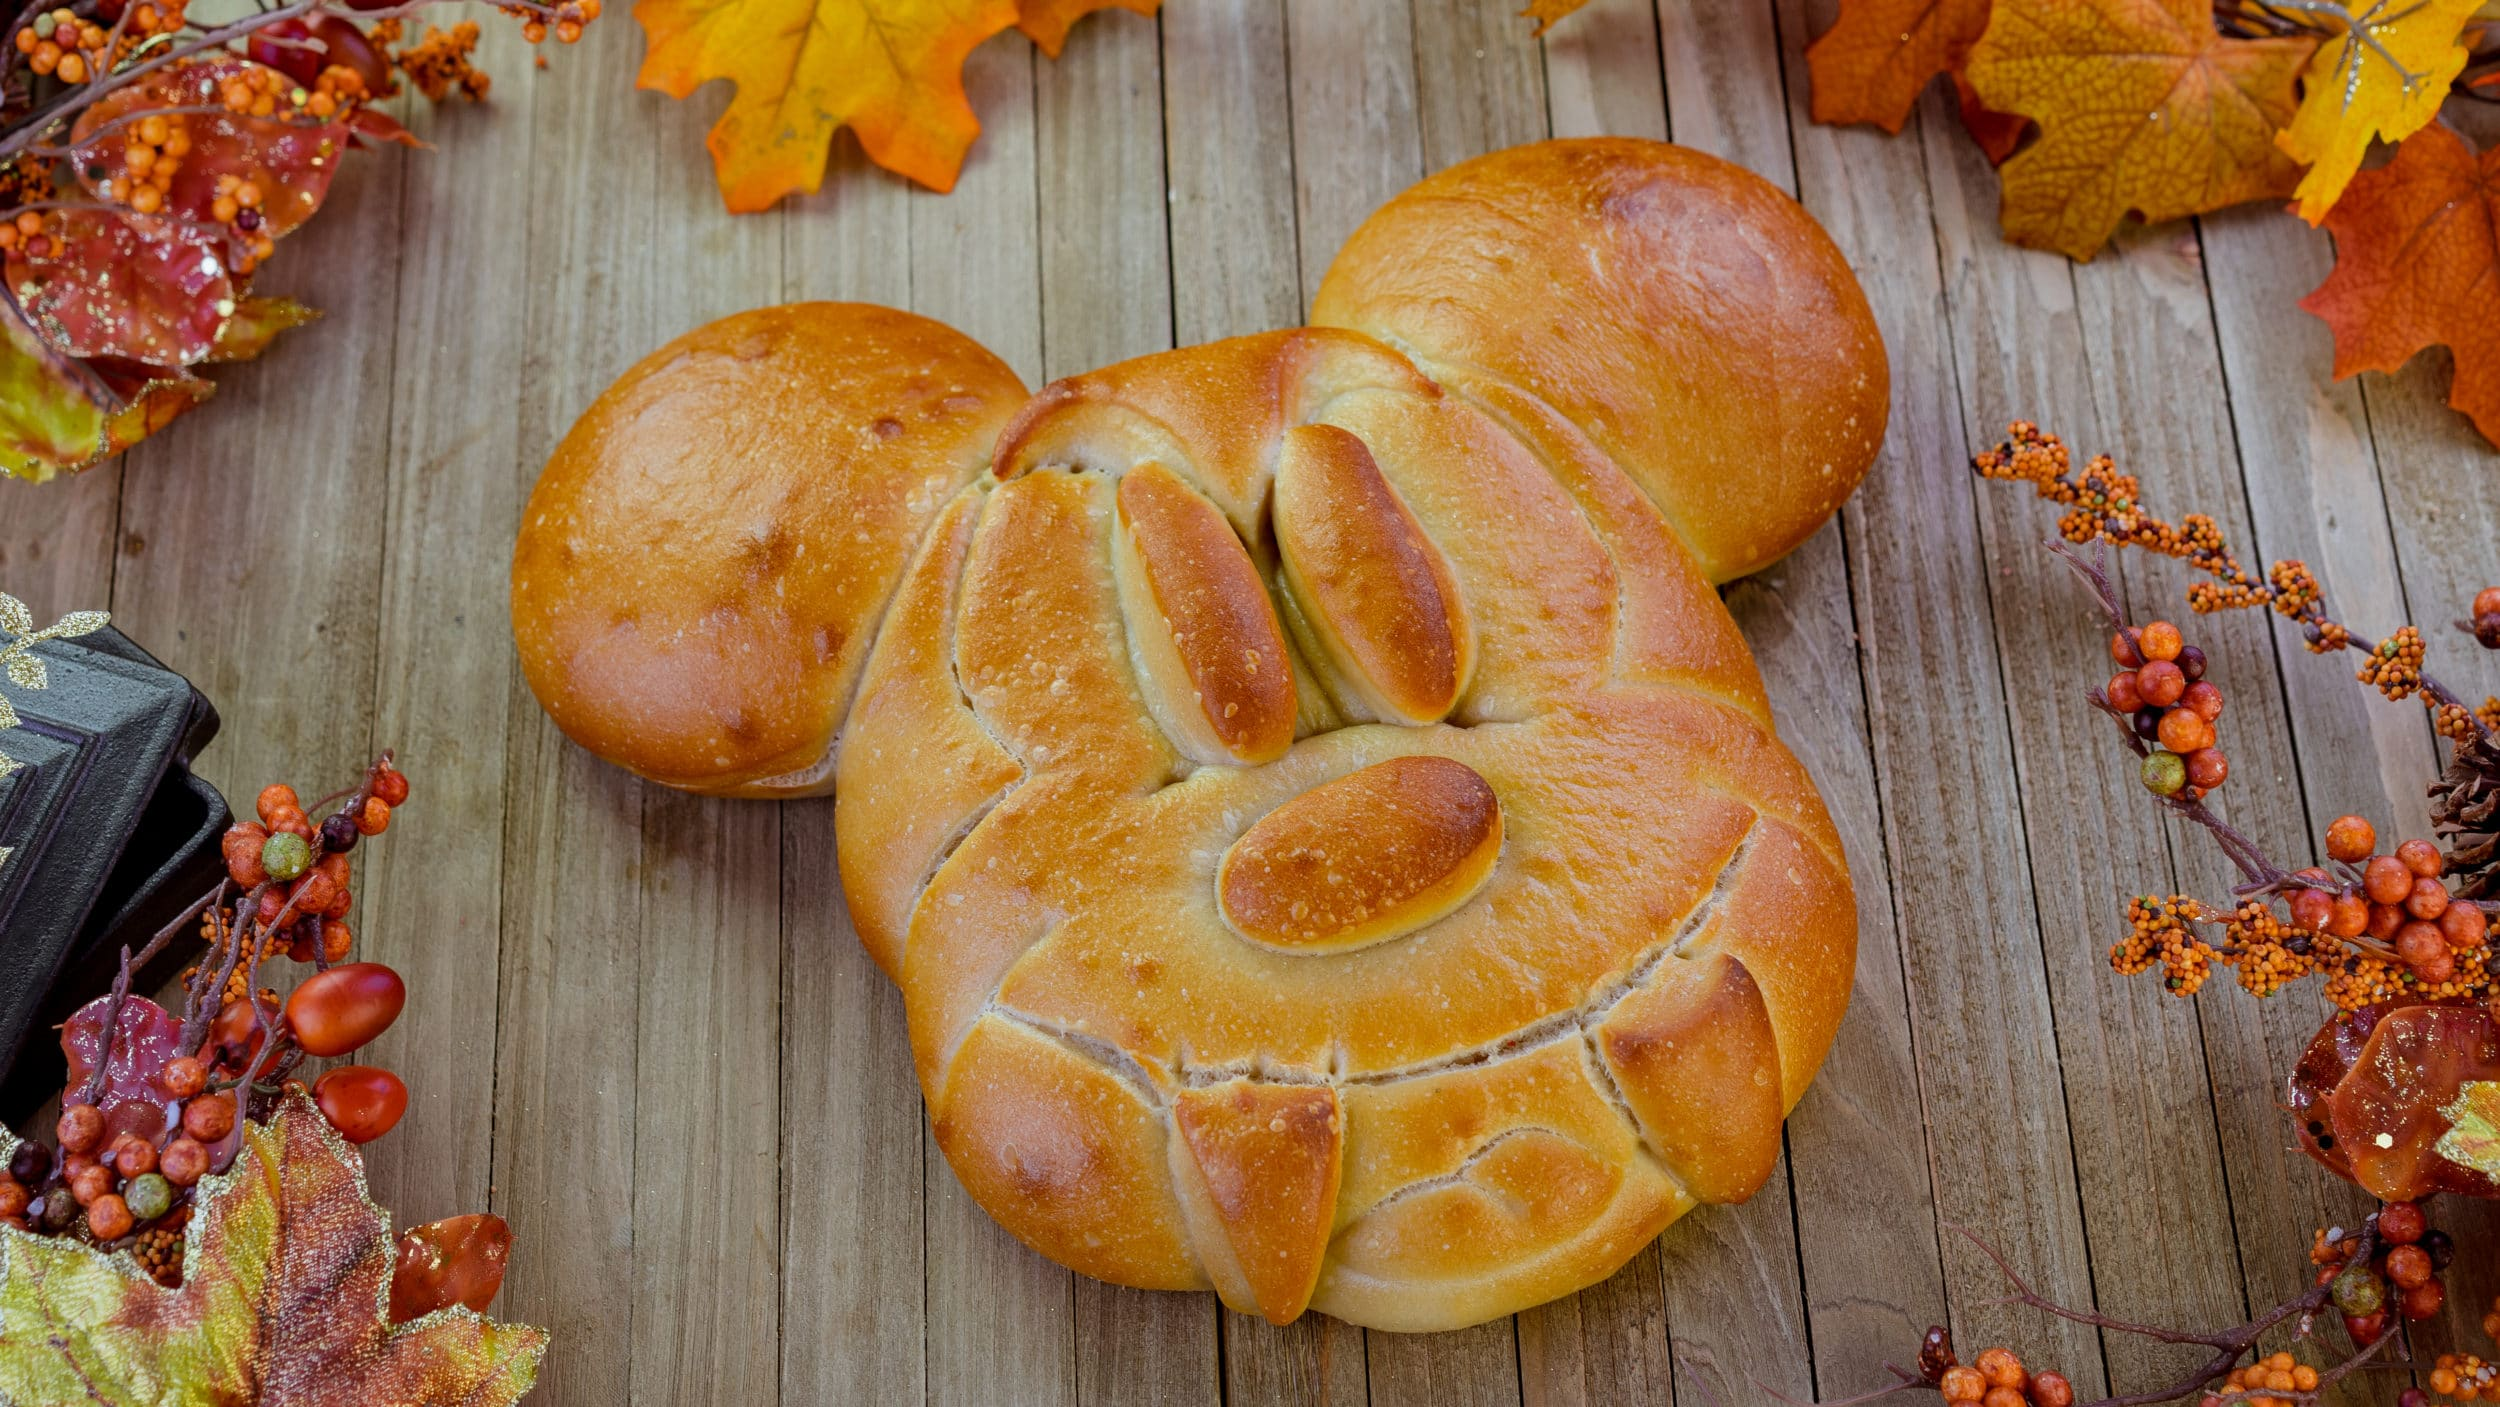 Disneyland Halloween food: Mickey Bread with Fangs